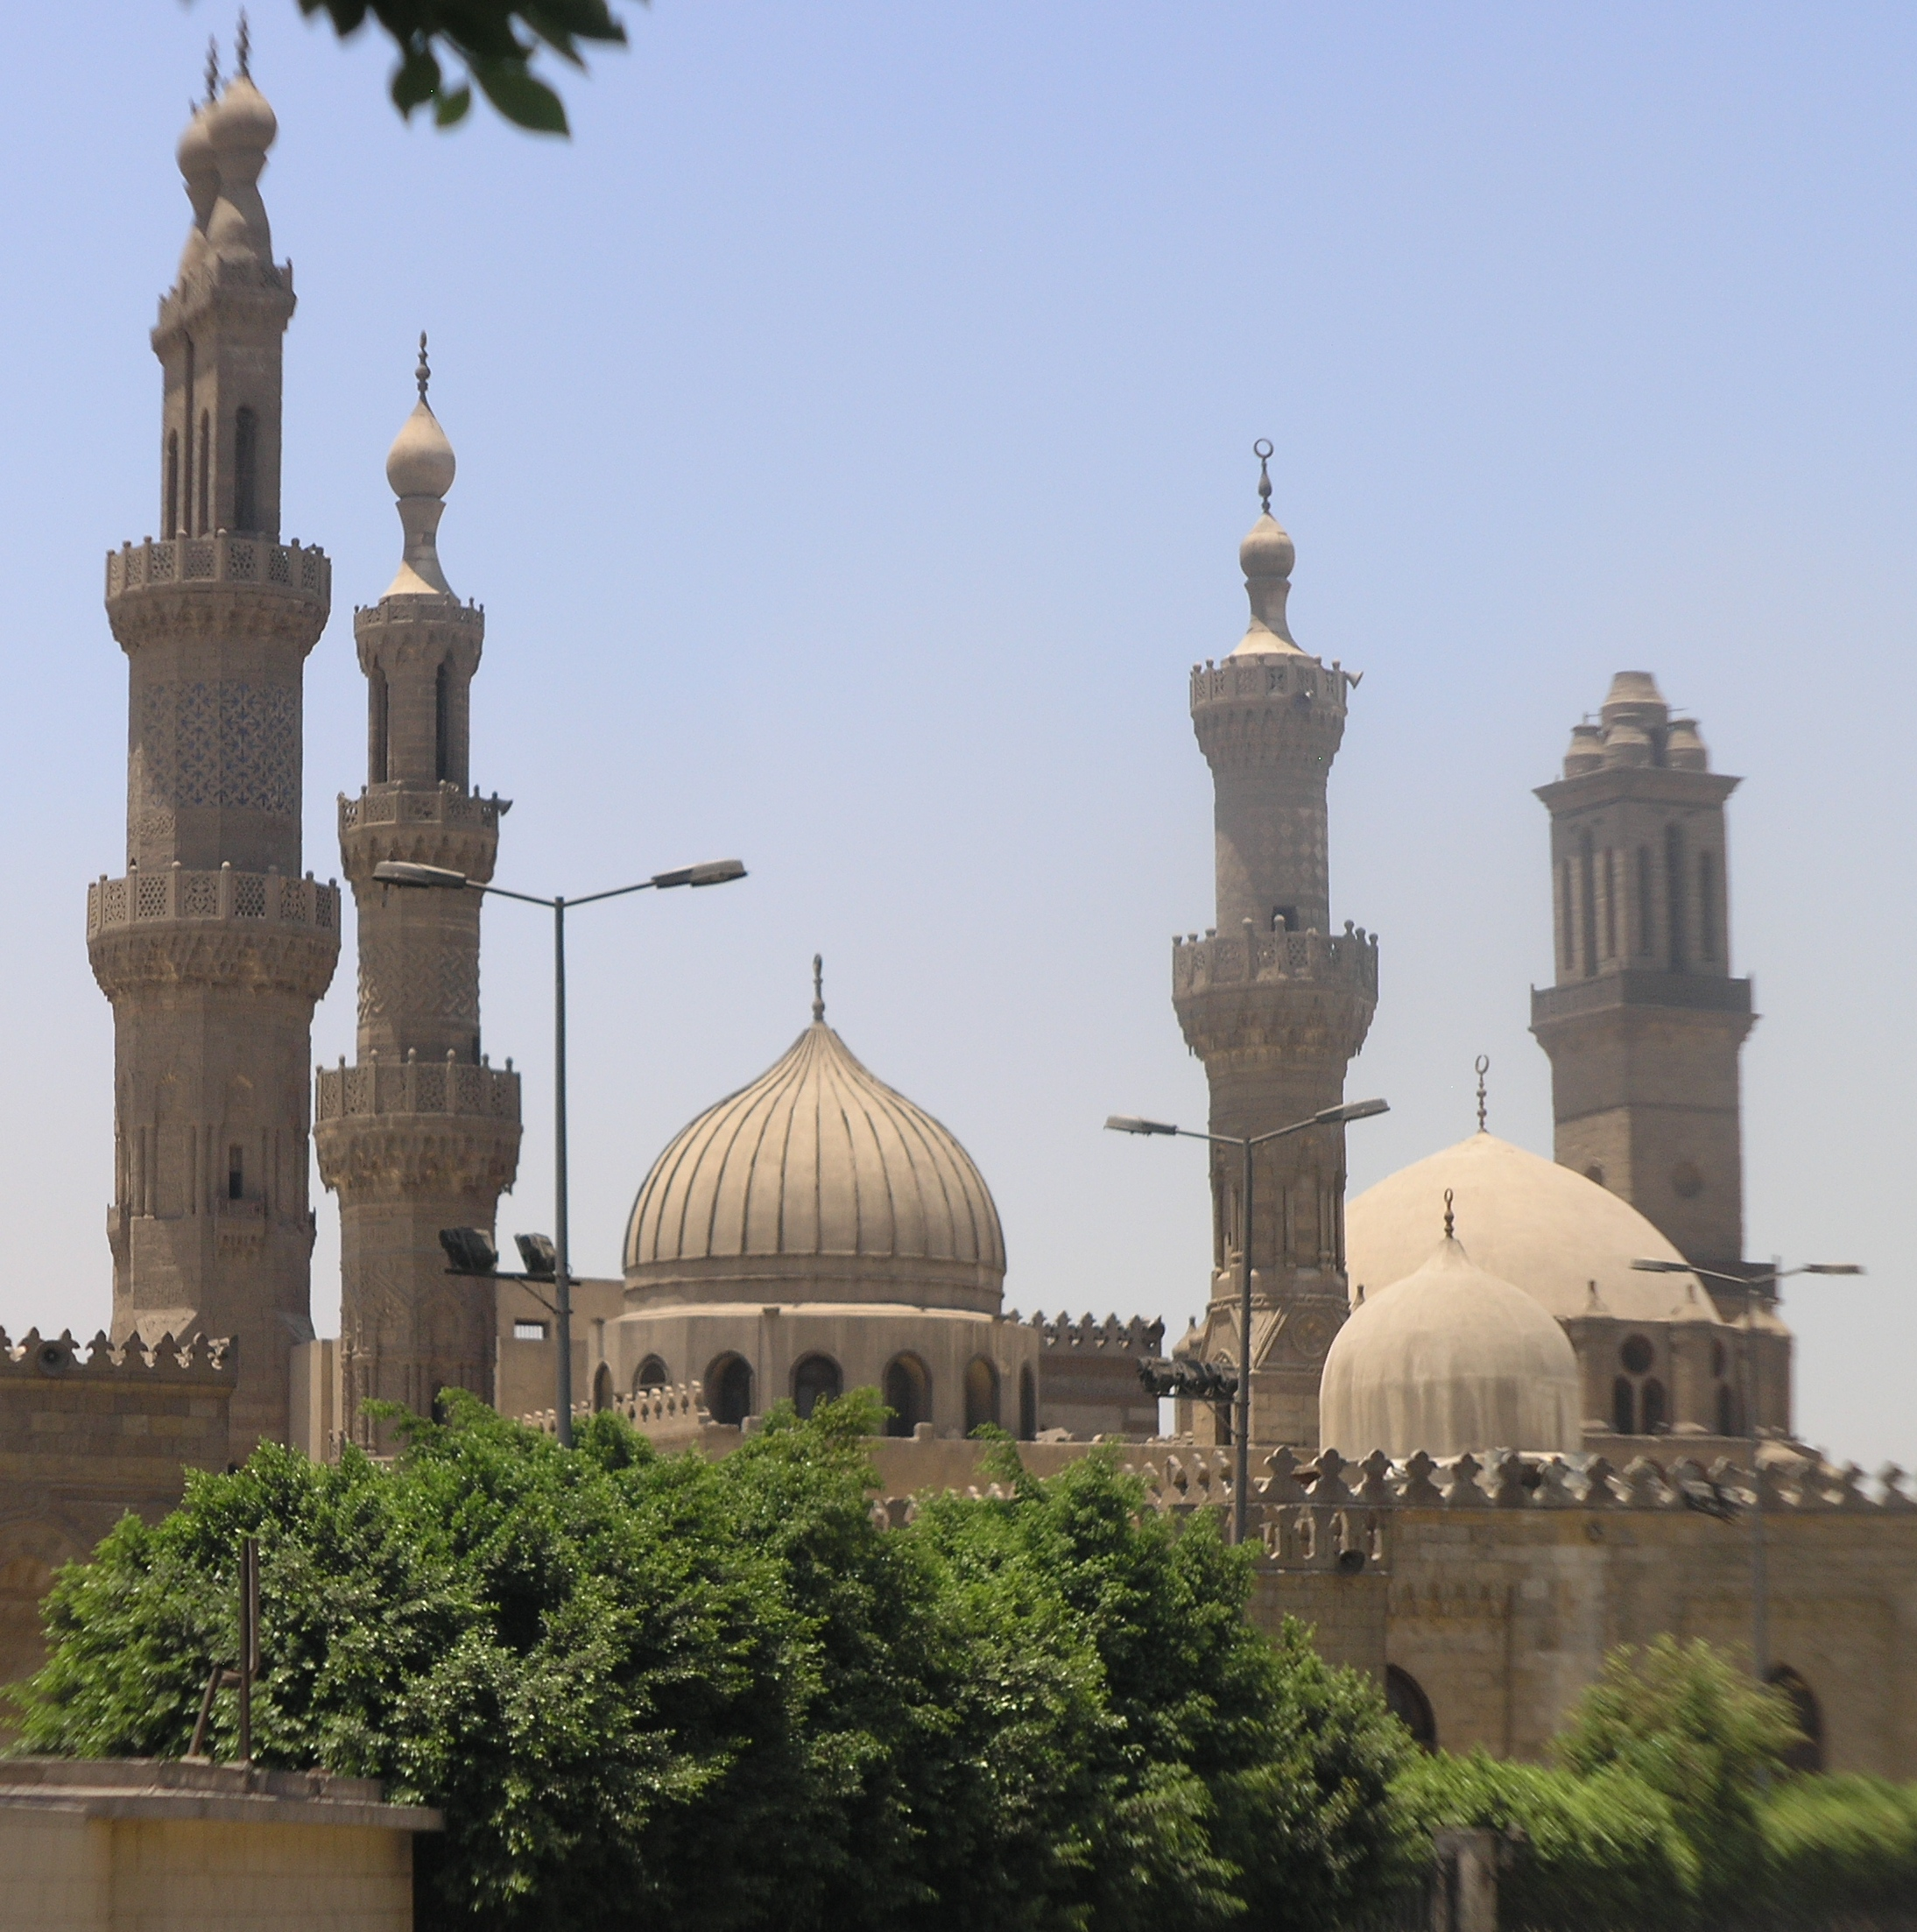 https://upload.wikimedia.org/wikipedia/commons/b/b1/Cairo_-_Islamic_district_-_Al_Azhar_Mosque_and_University.JPG